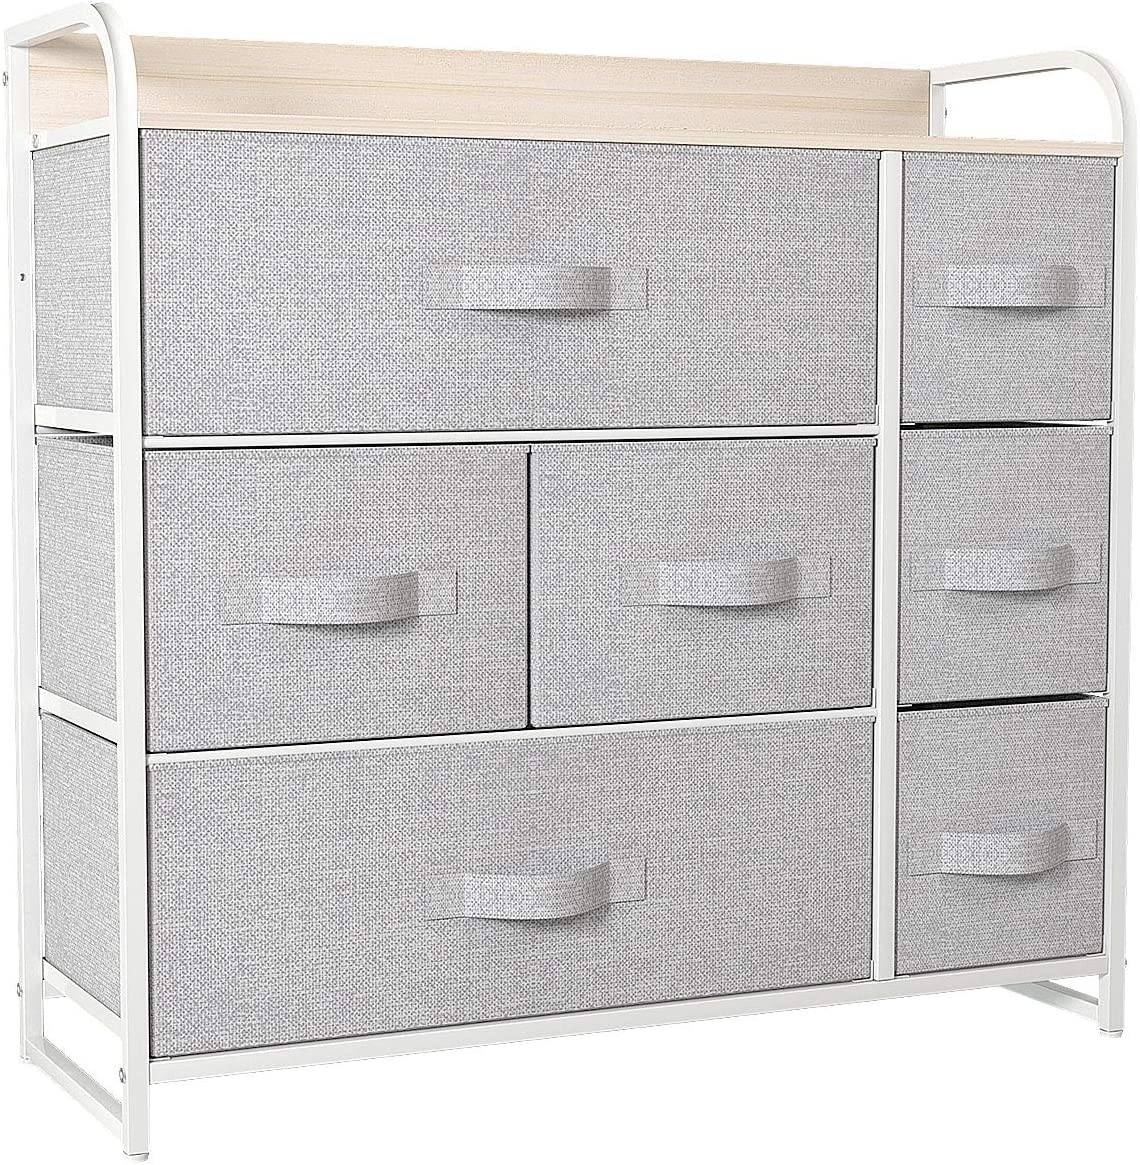 YITAHOME Dresser with 7 Drawers - Furniture Storage Tower Unit for Bedroom, Hallway, Closet, Office Organization - Steel Frame, Wood Top, Easy Pull Fabric Bins (Light Gray)